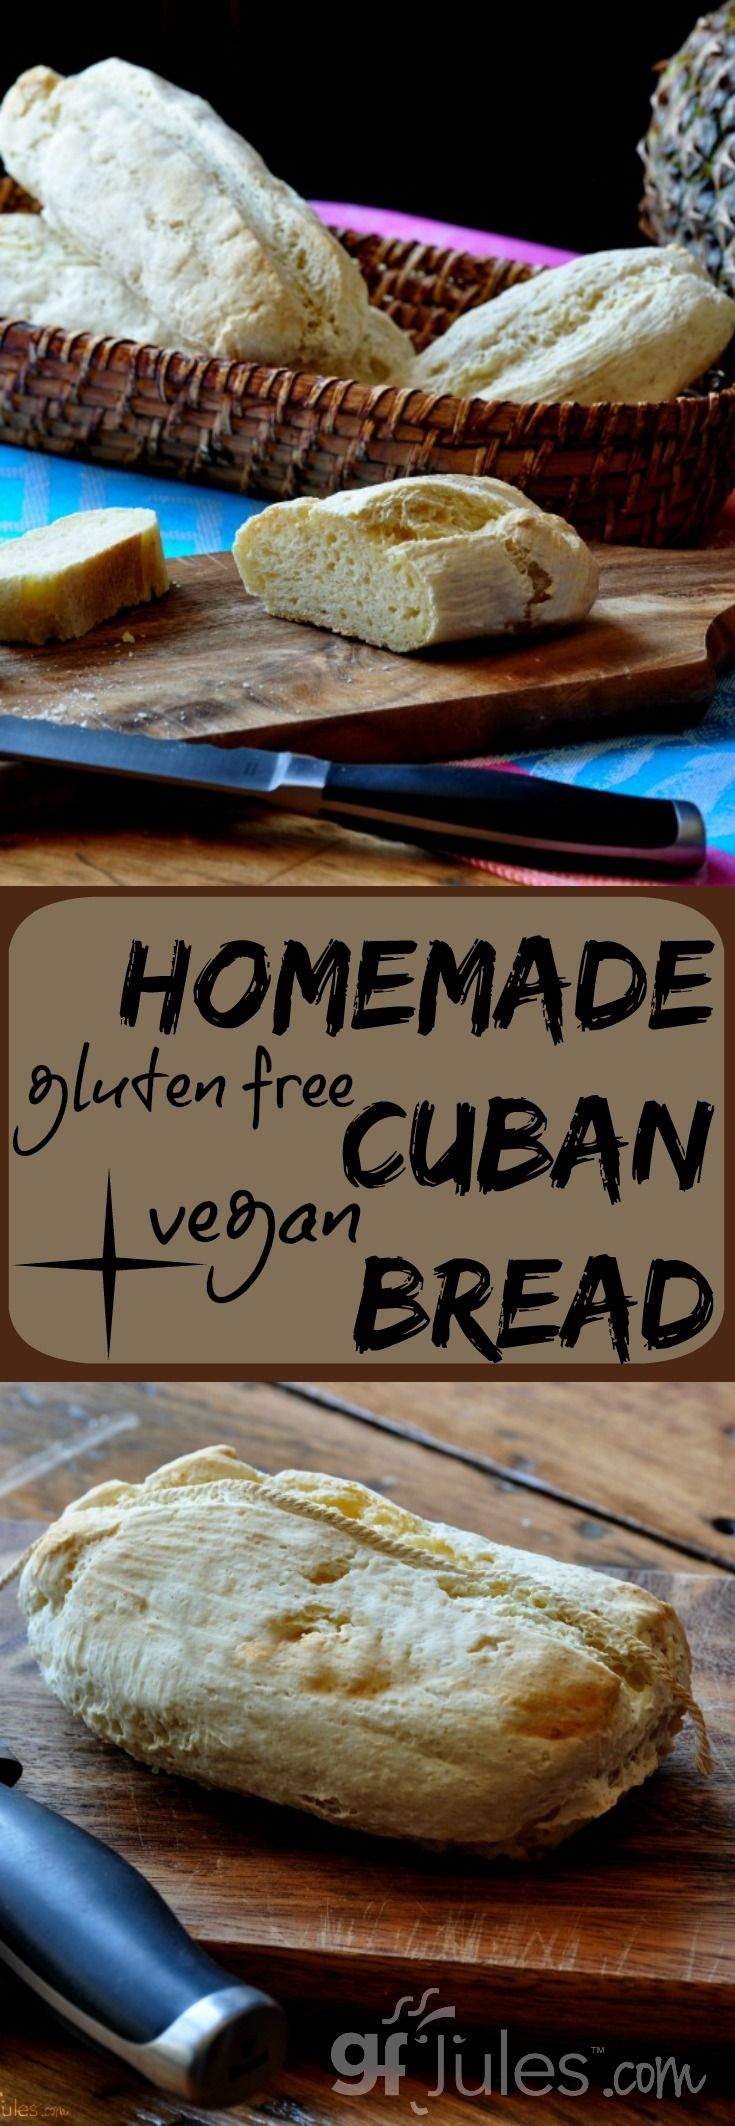 "Gluten Free & Vegan Cuban Bread ... tastes like ""Real Cuban Bread!"" Makes incredible sandwiches, too!"